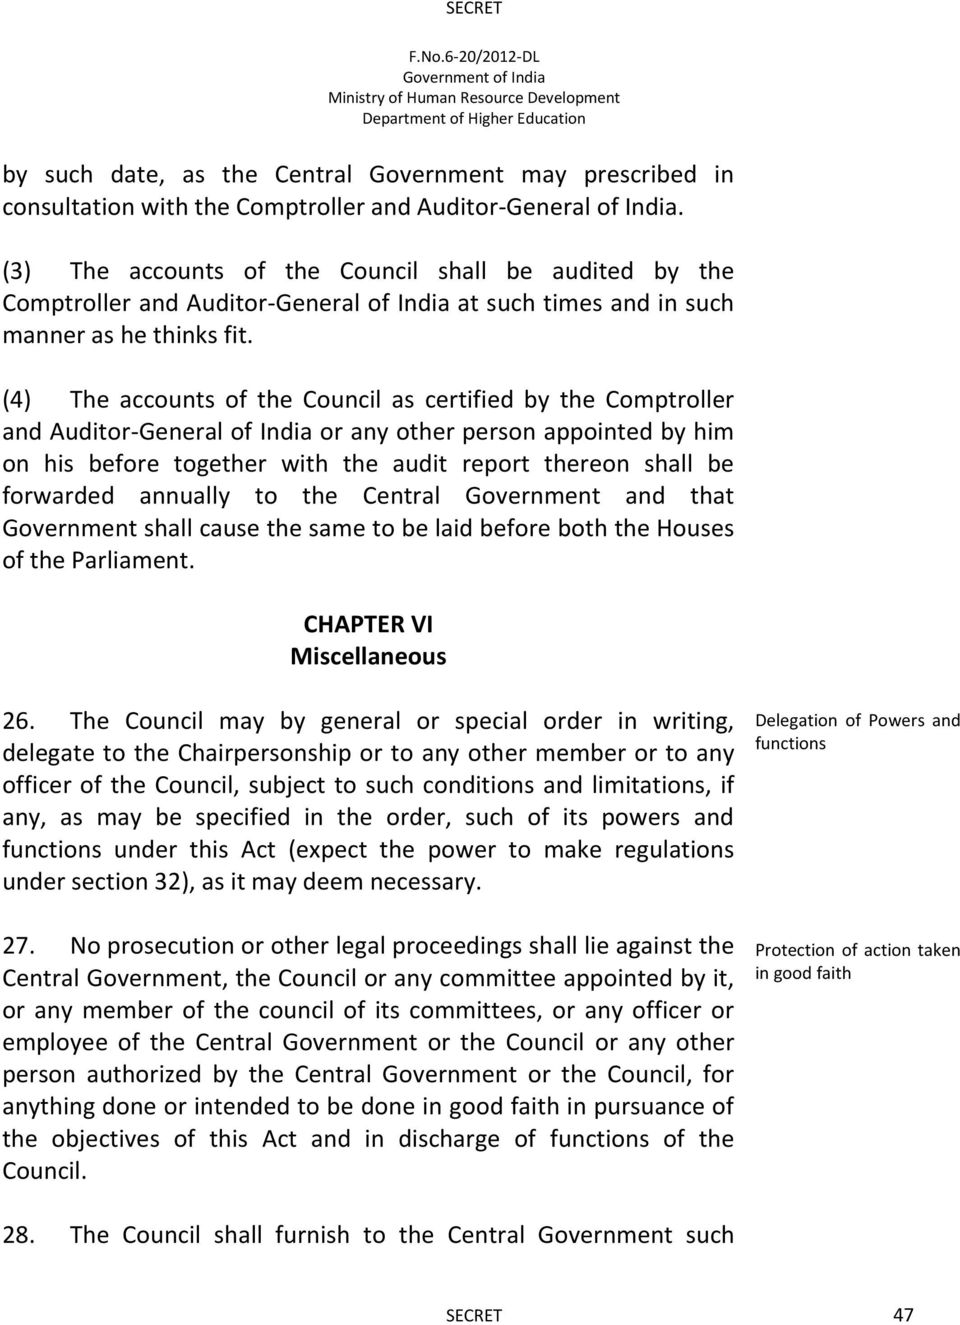 (4) The accounts of the Council as certified by the Comptroller and Auditor-General of India or any other person appointed by him on his before together with the audit report thereon shall be